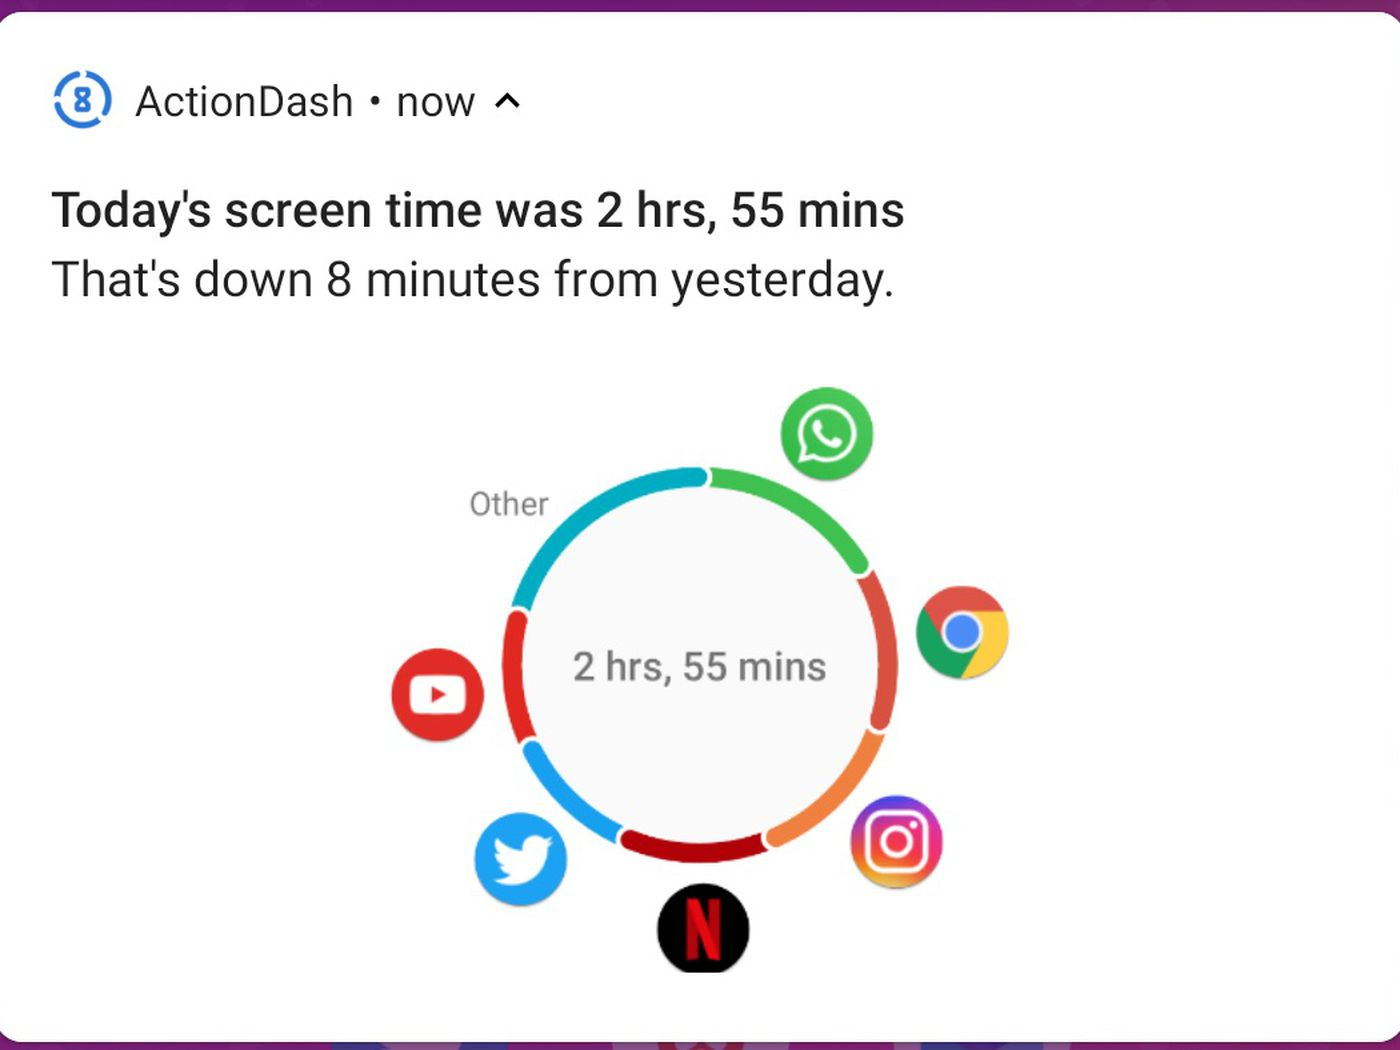 ActionDash brings Google's Digital Wellbeing features to all Android